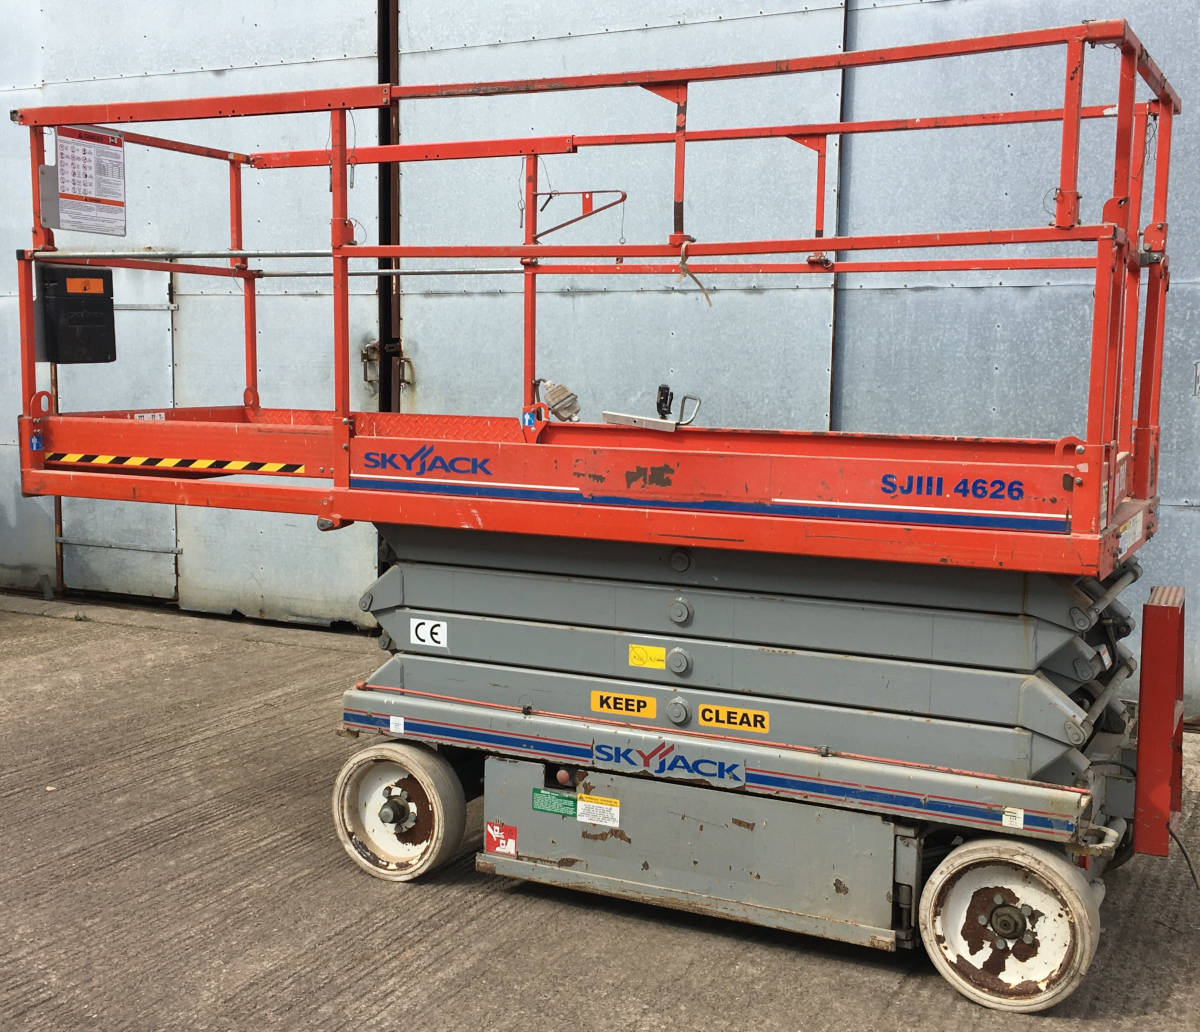 Image of Skyjack SJ 4626 Access Platform 8mtr Electric Scissor Lift